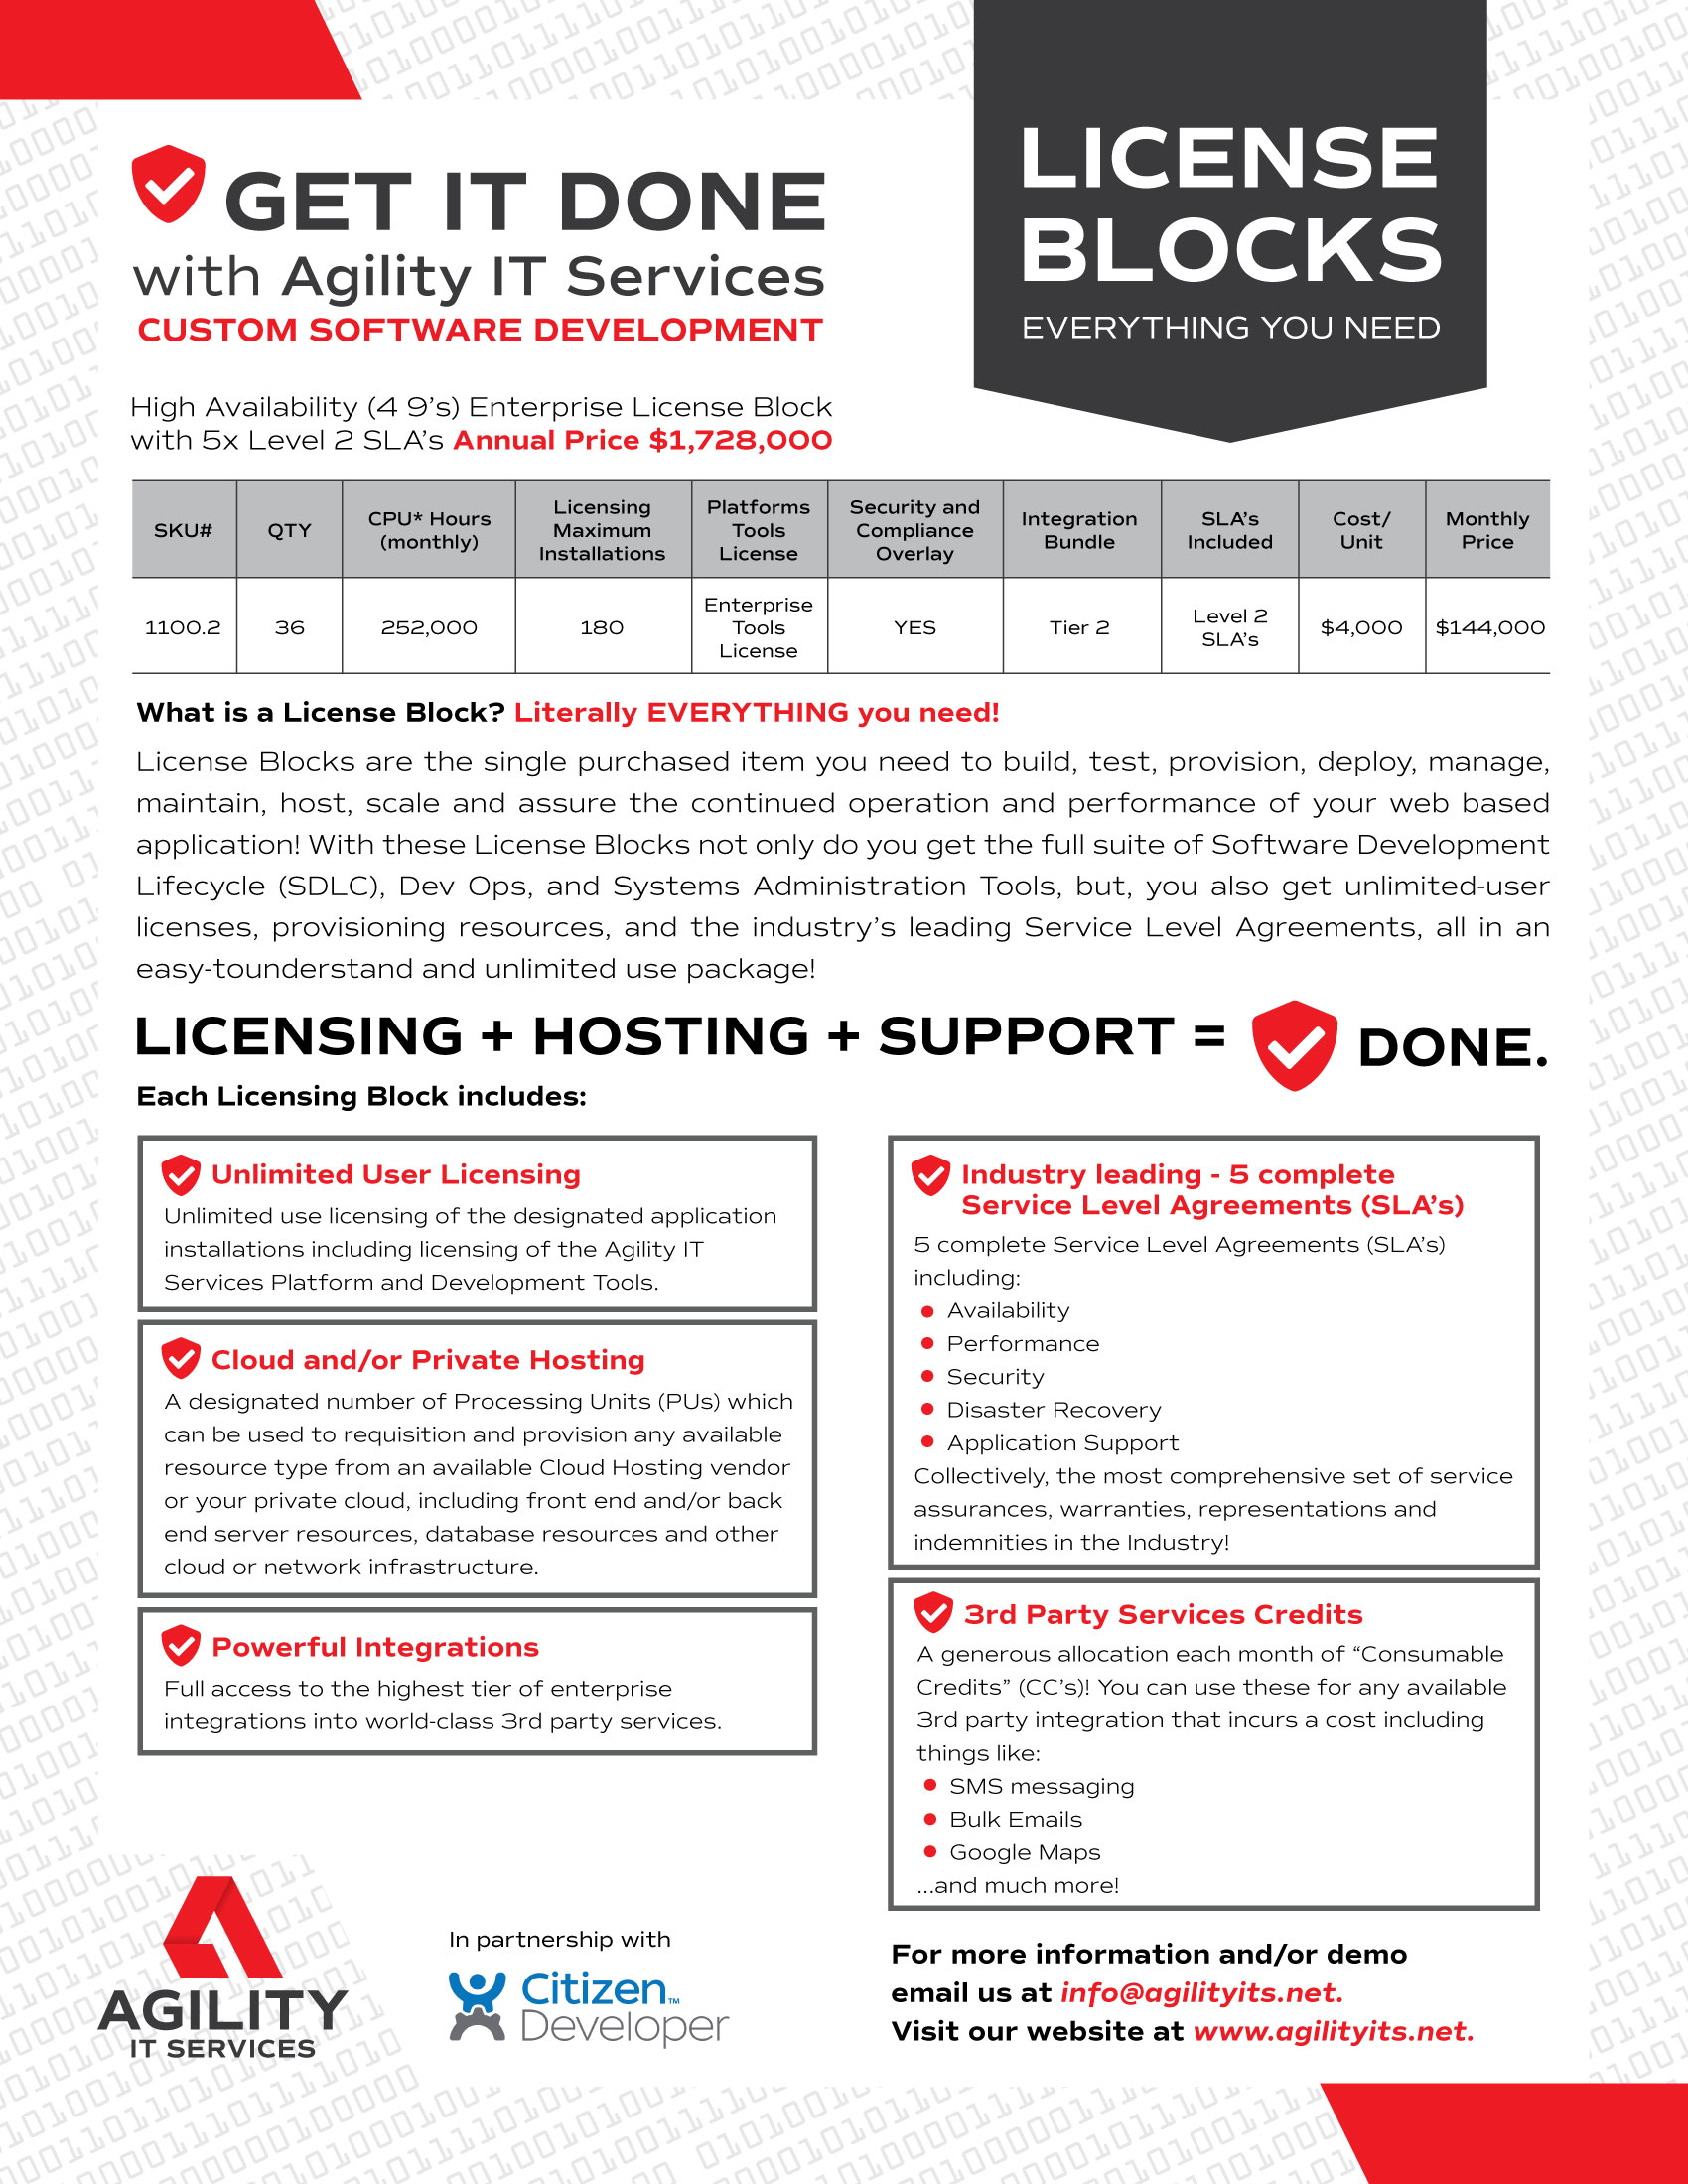 Agility IT Services - License Blocks